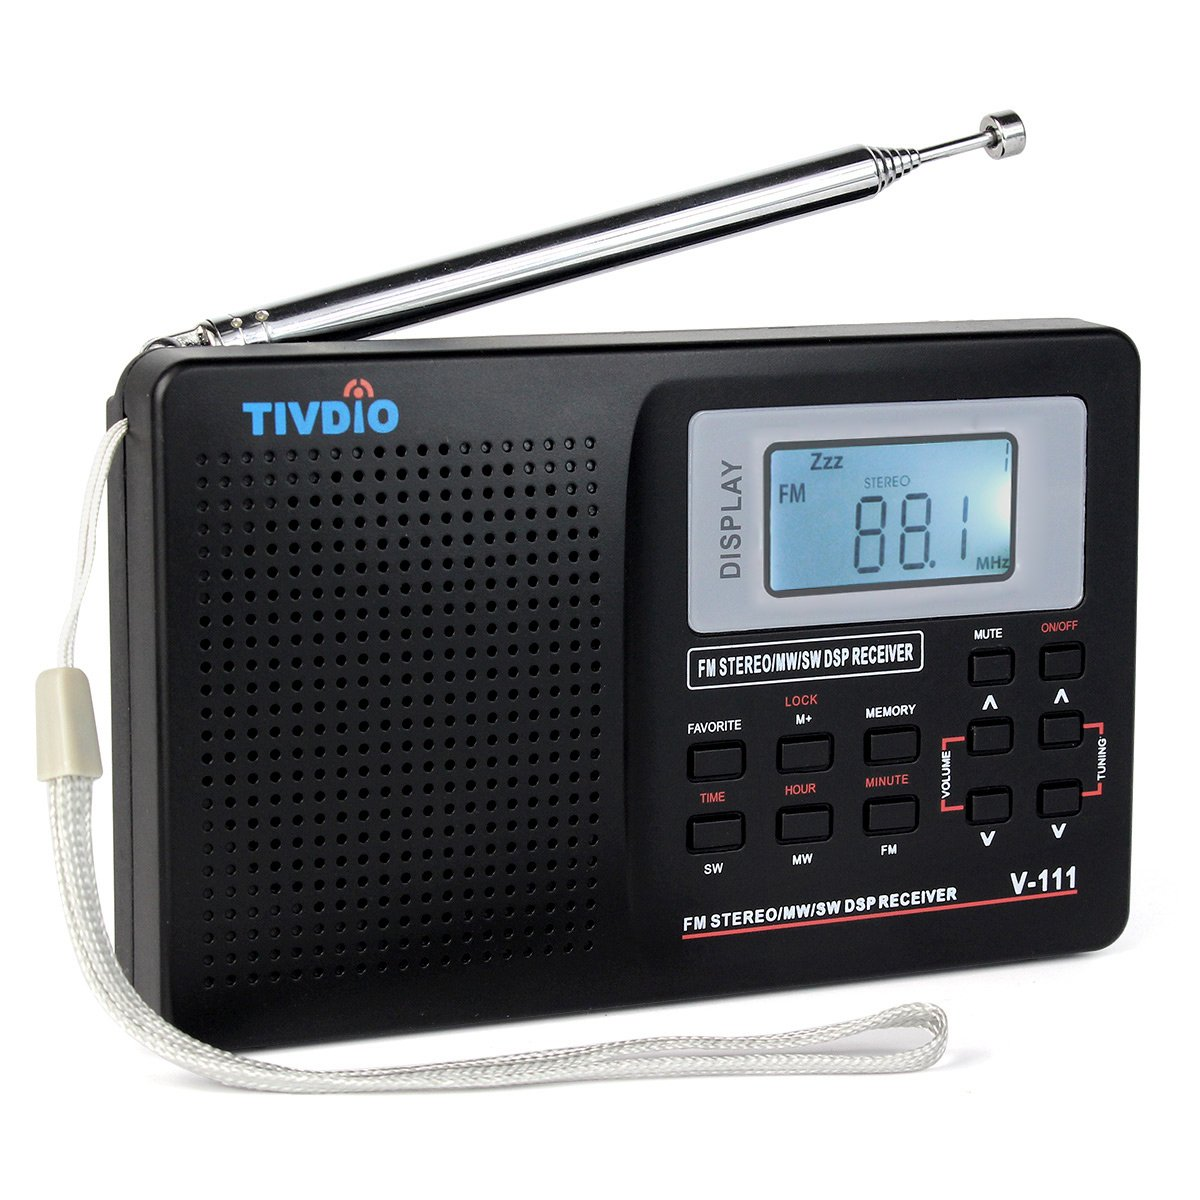 TIVDIO V-111 Portable AM FM Shortwave Radio Alarm Clock Battery Operated AA Battery 12 H Time Display with Back-light Earphone Jack Sleep Timer(Black)